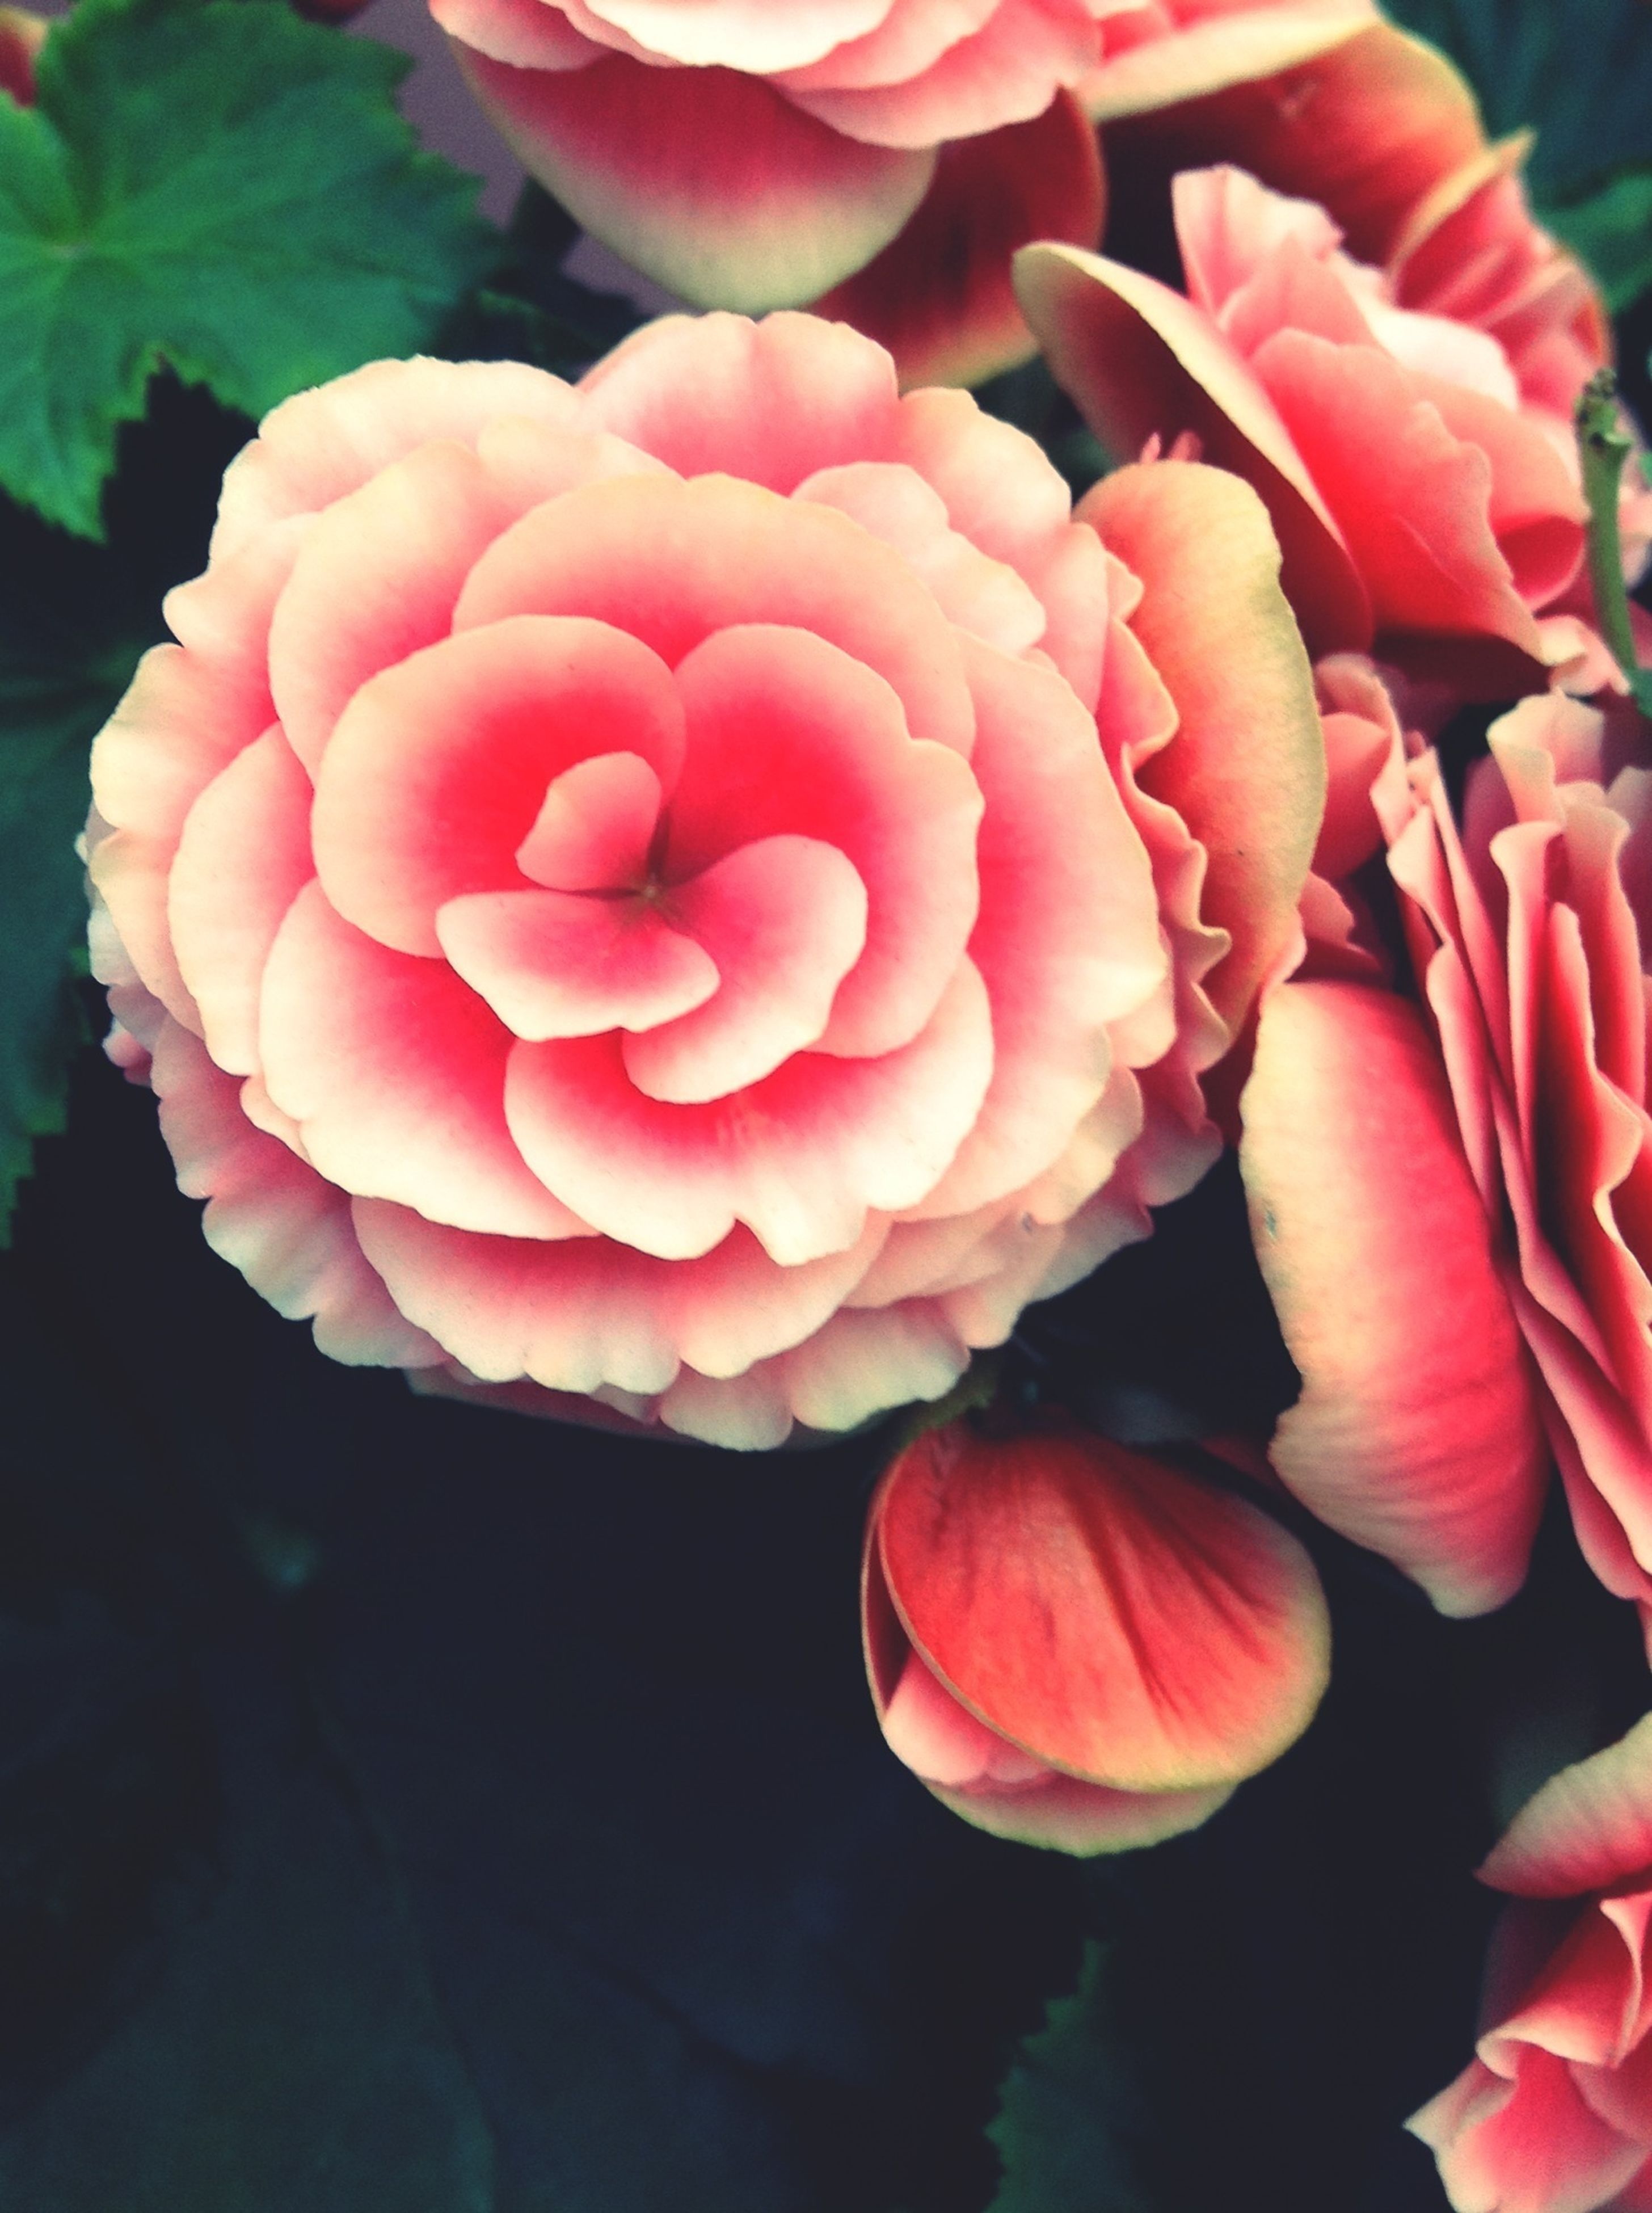 flower, petal, freshness, flower head, fragility, beauty in nature, growth, close-up, pink color, red, nature, rose - flower, blooming, plant, pink, rose, blossom, single flower, no people, focus on foreground